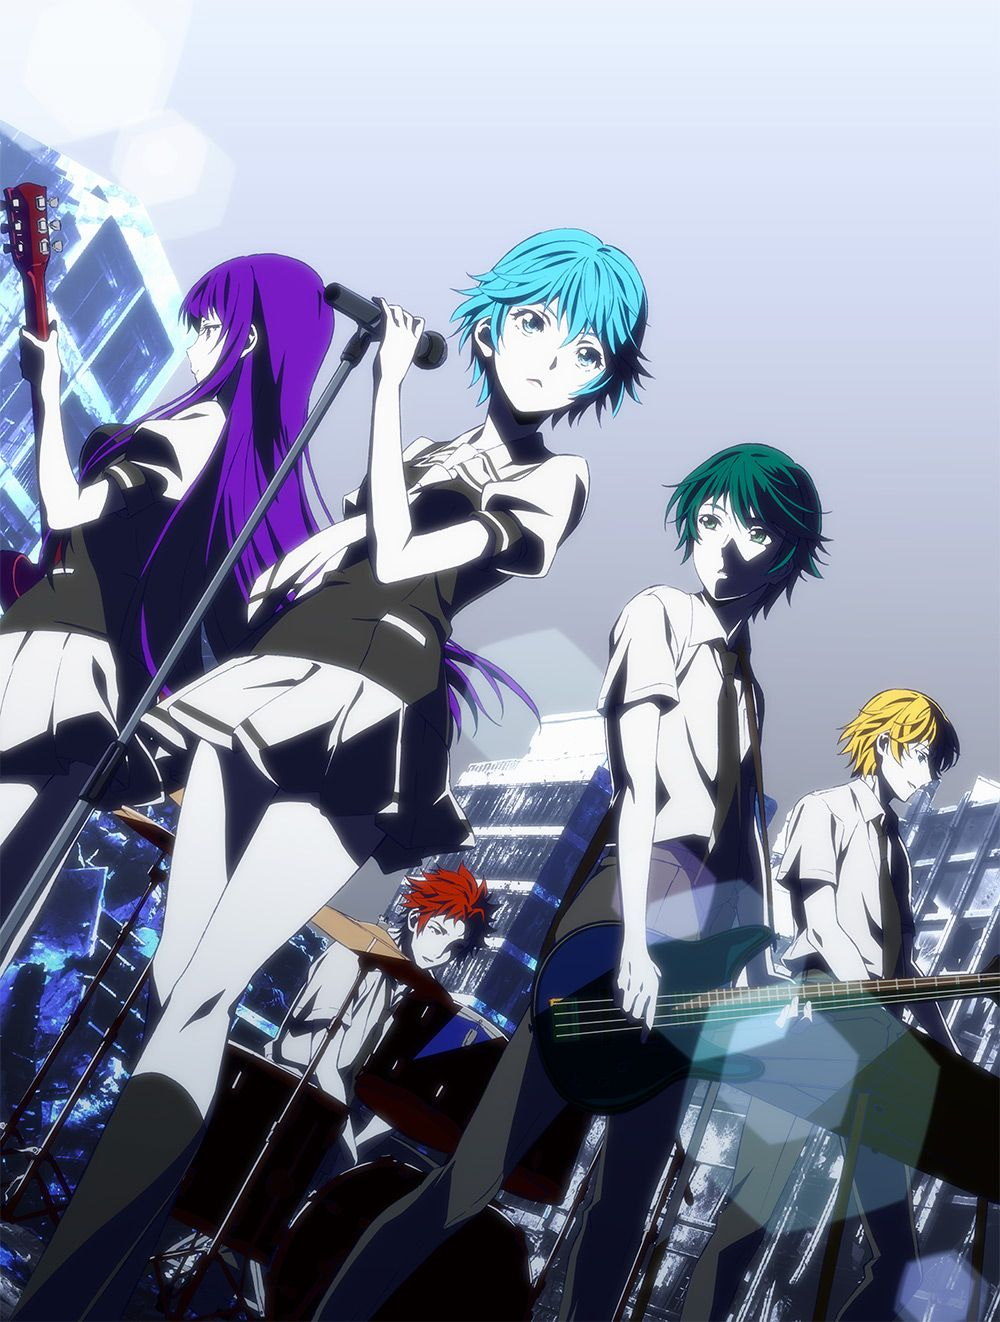 Fuuka This Anime So Far Is Amazing Still Being Made 2017 Plzzzzzz Watch Genre